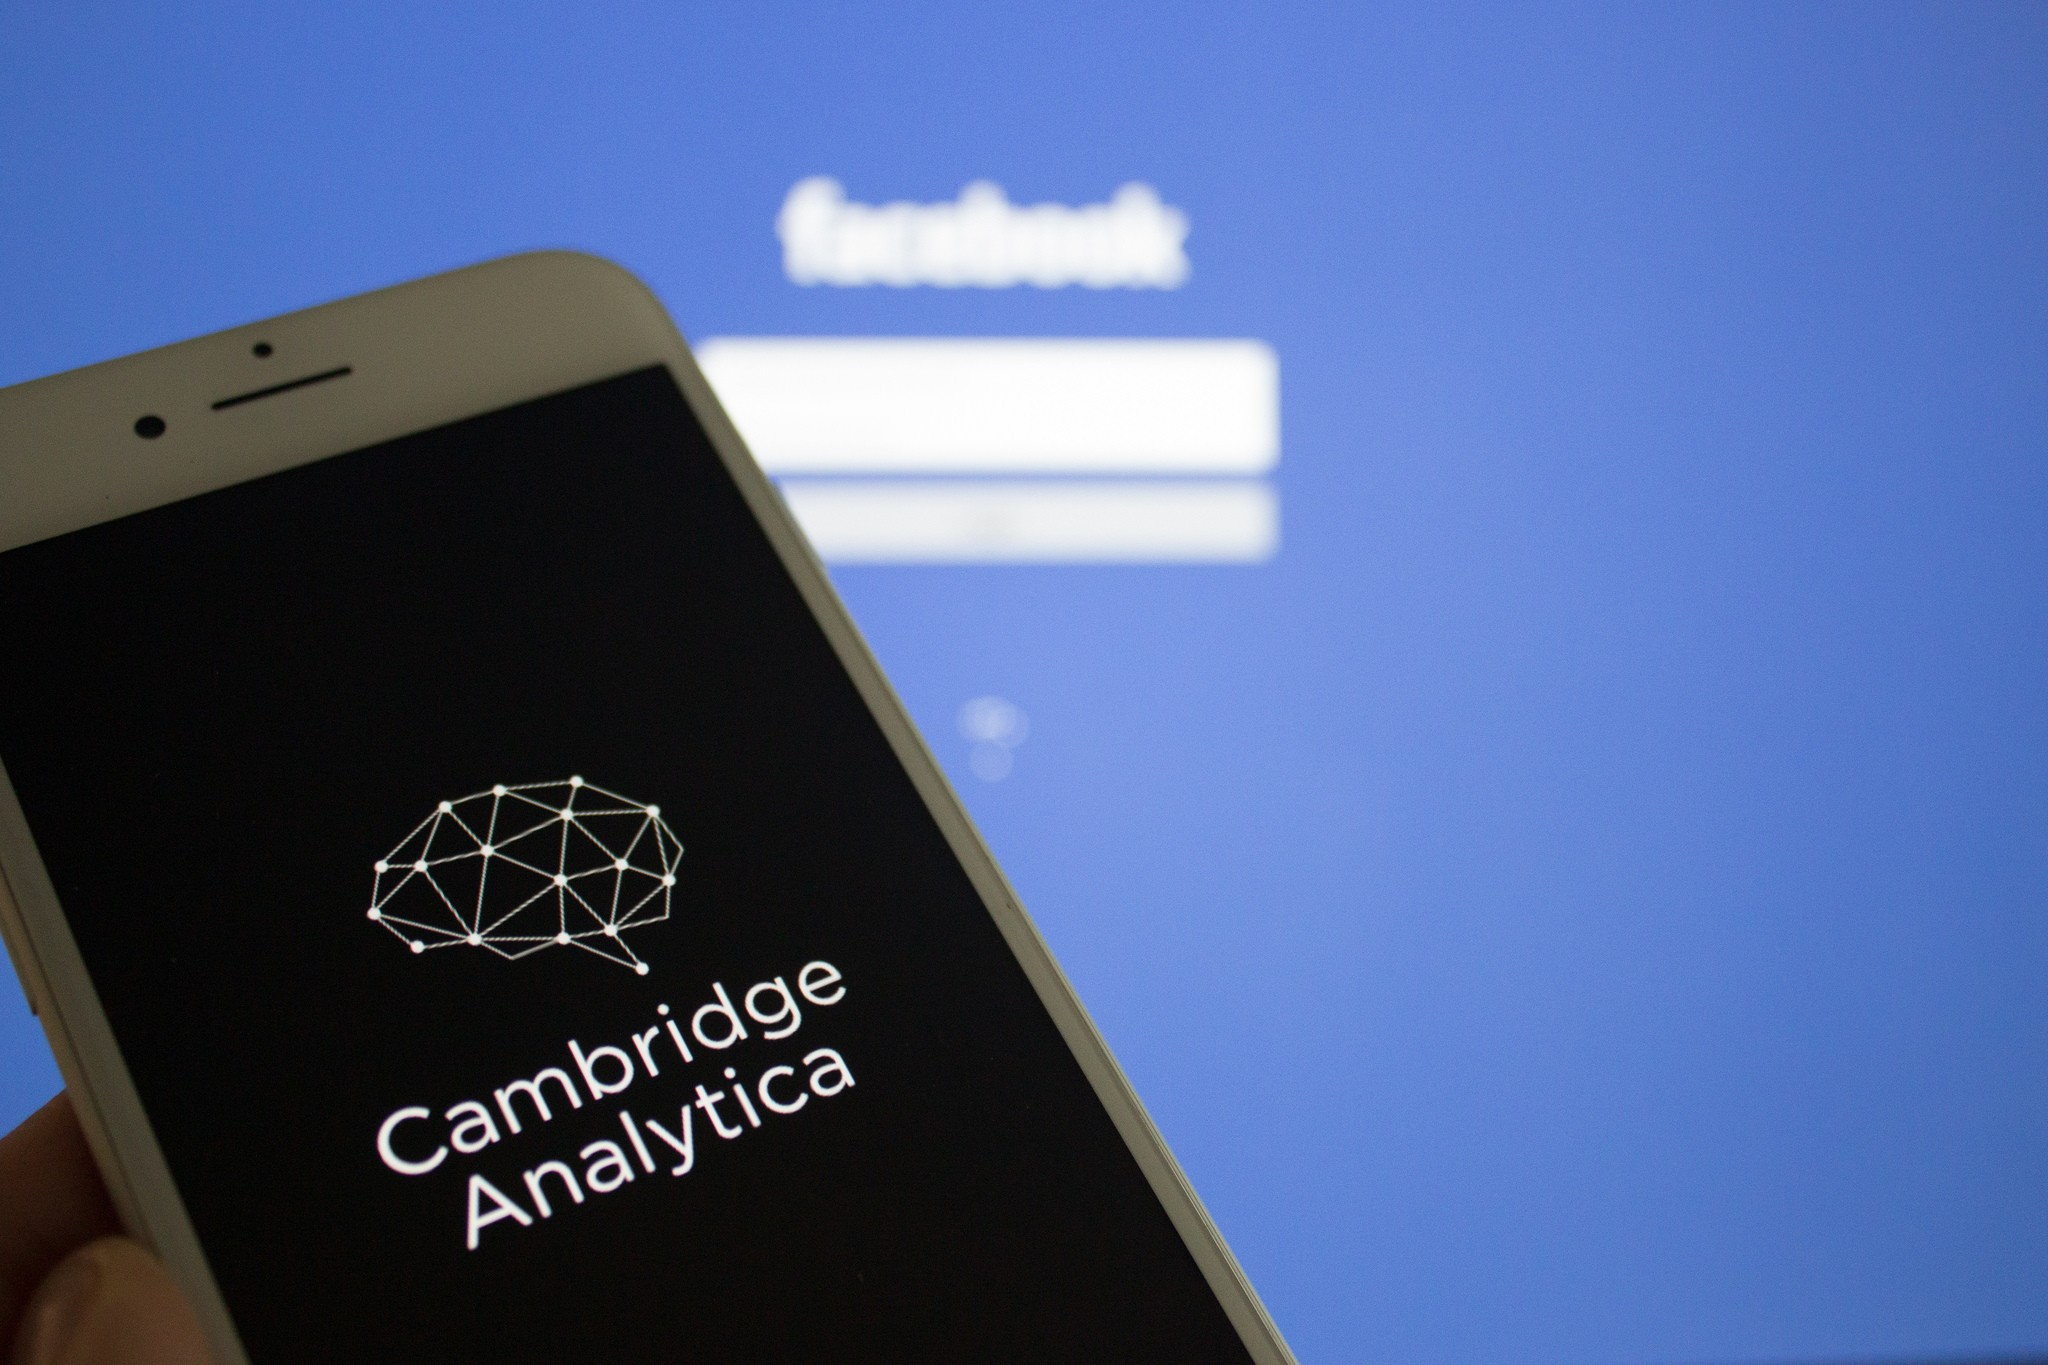 Your own devices will give the next Cambridge Analytica far more power to influence your vote